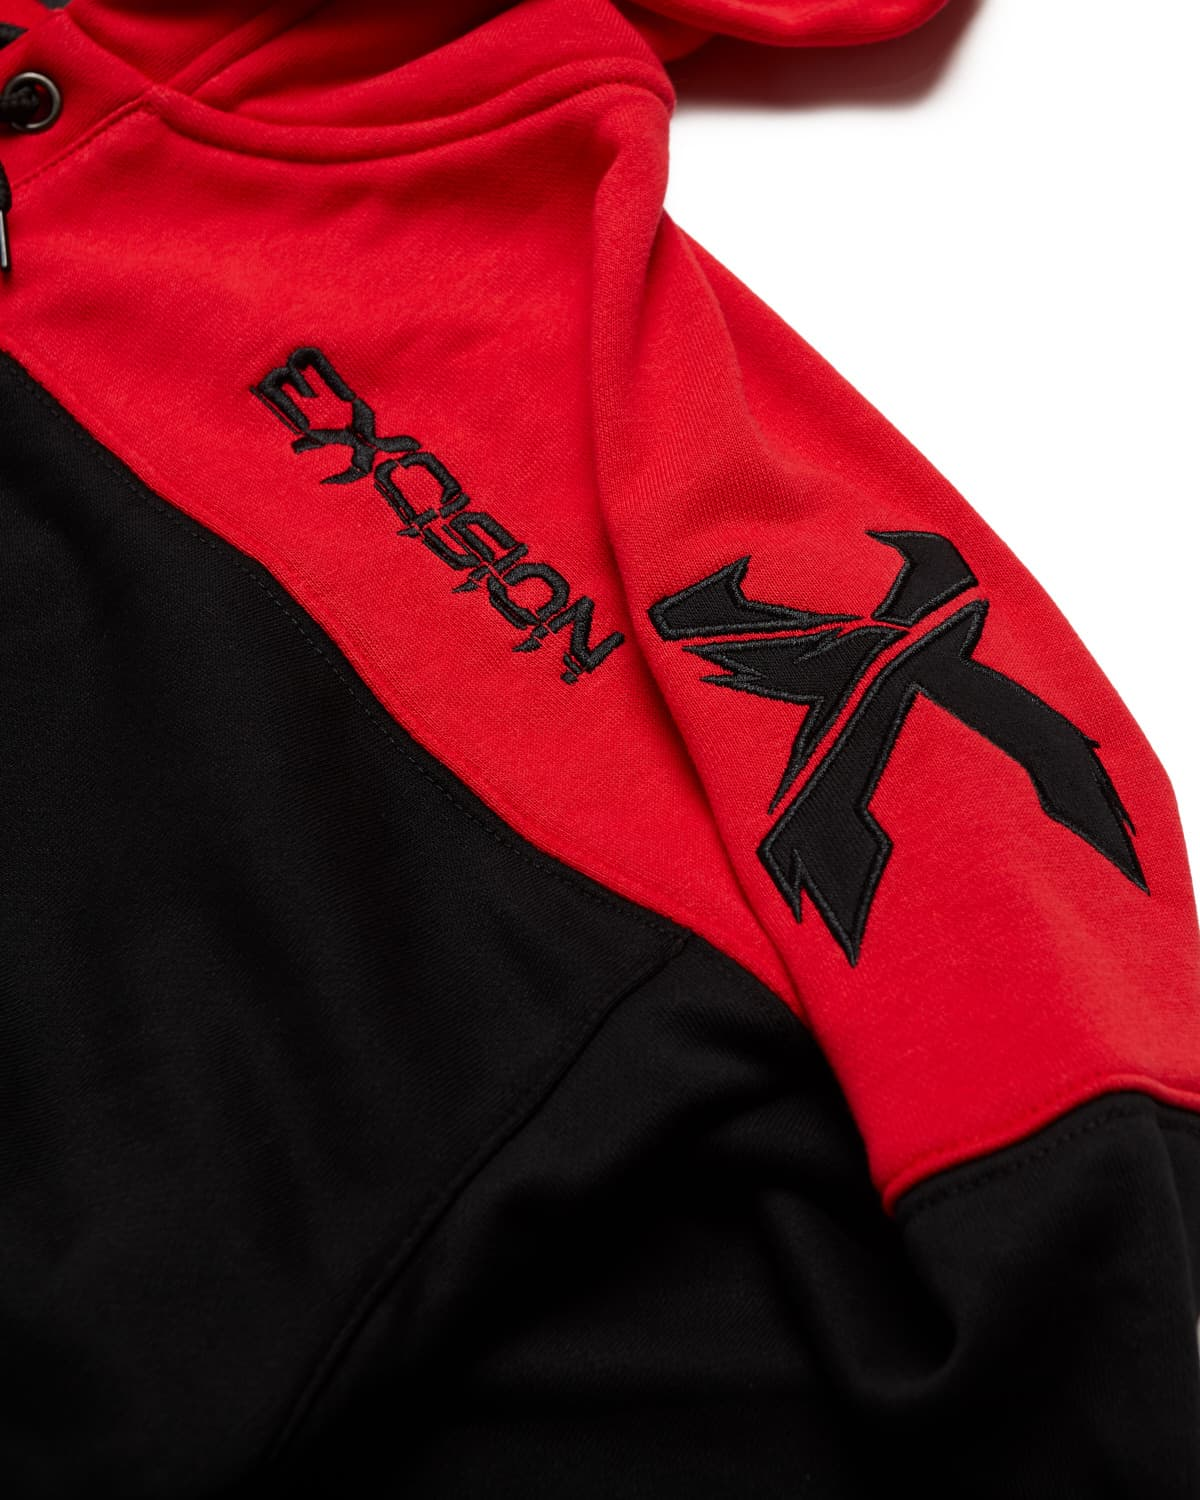 Excision Rex Lacer Hoodie - Black/Grey/Red